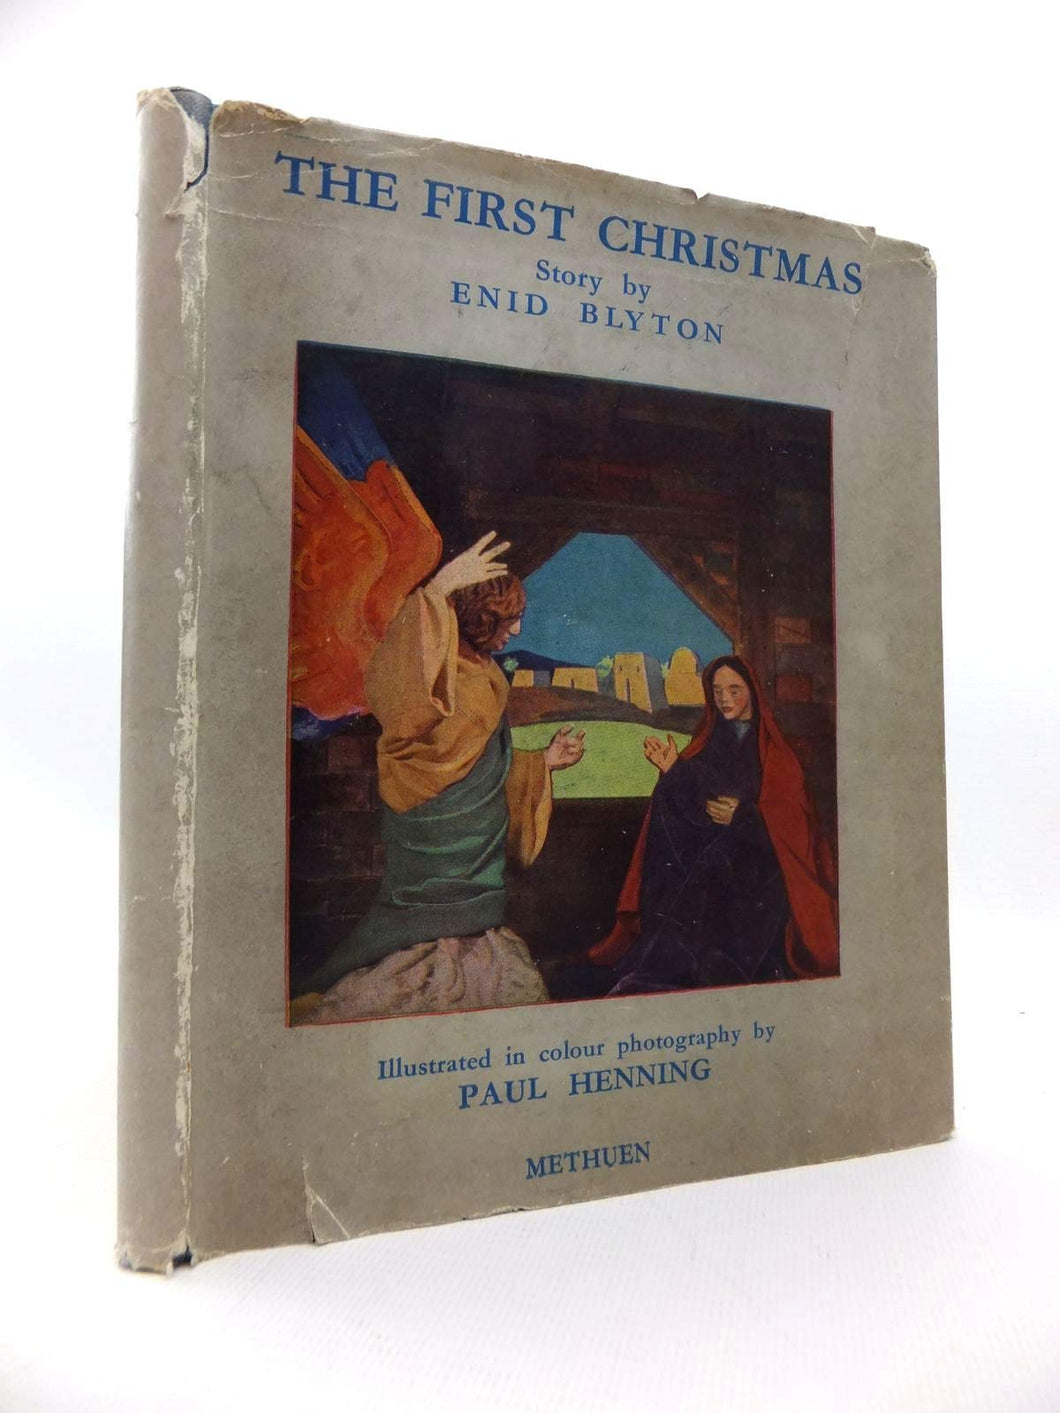 THE FIRST CHRISTMAS. [Hardcover] Blyton, Enid.